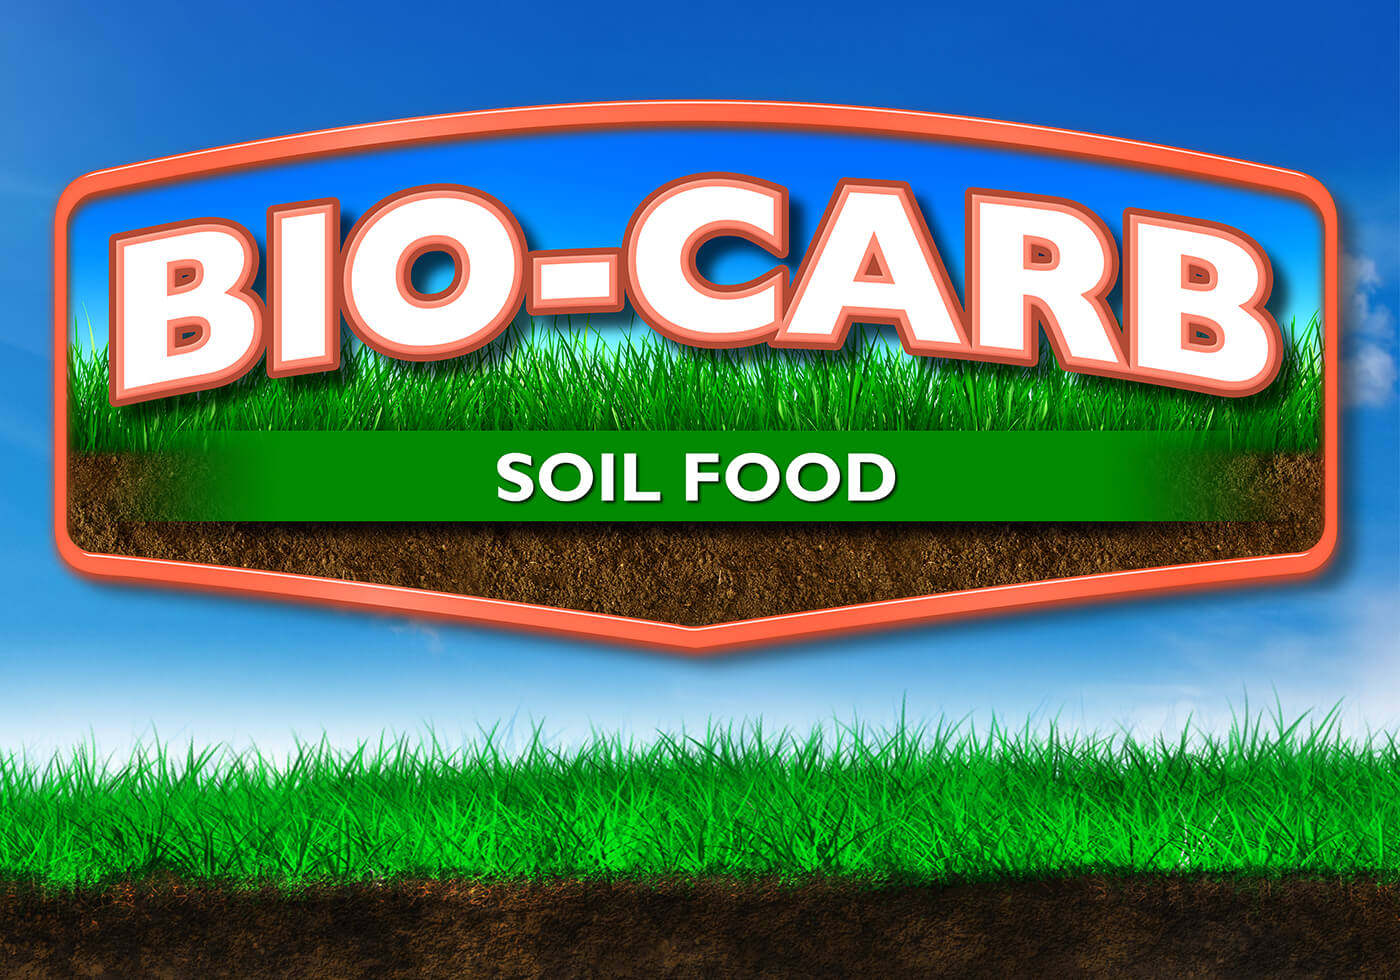 large orange and white nutrasorb bio carb logo soil food over blue sky background grass and dirt